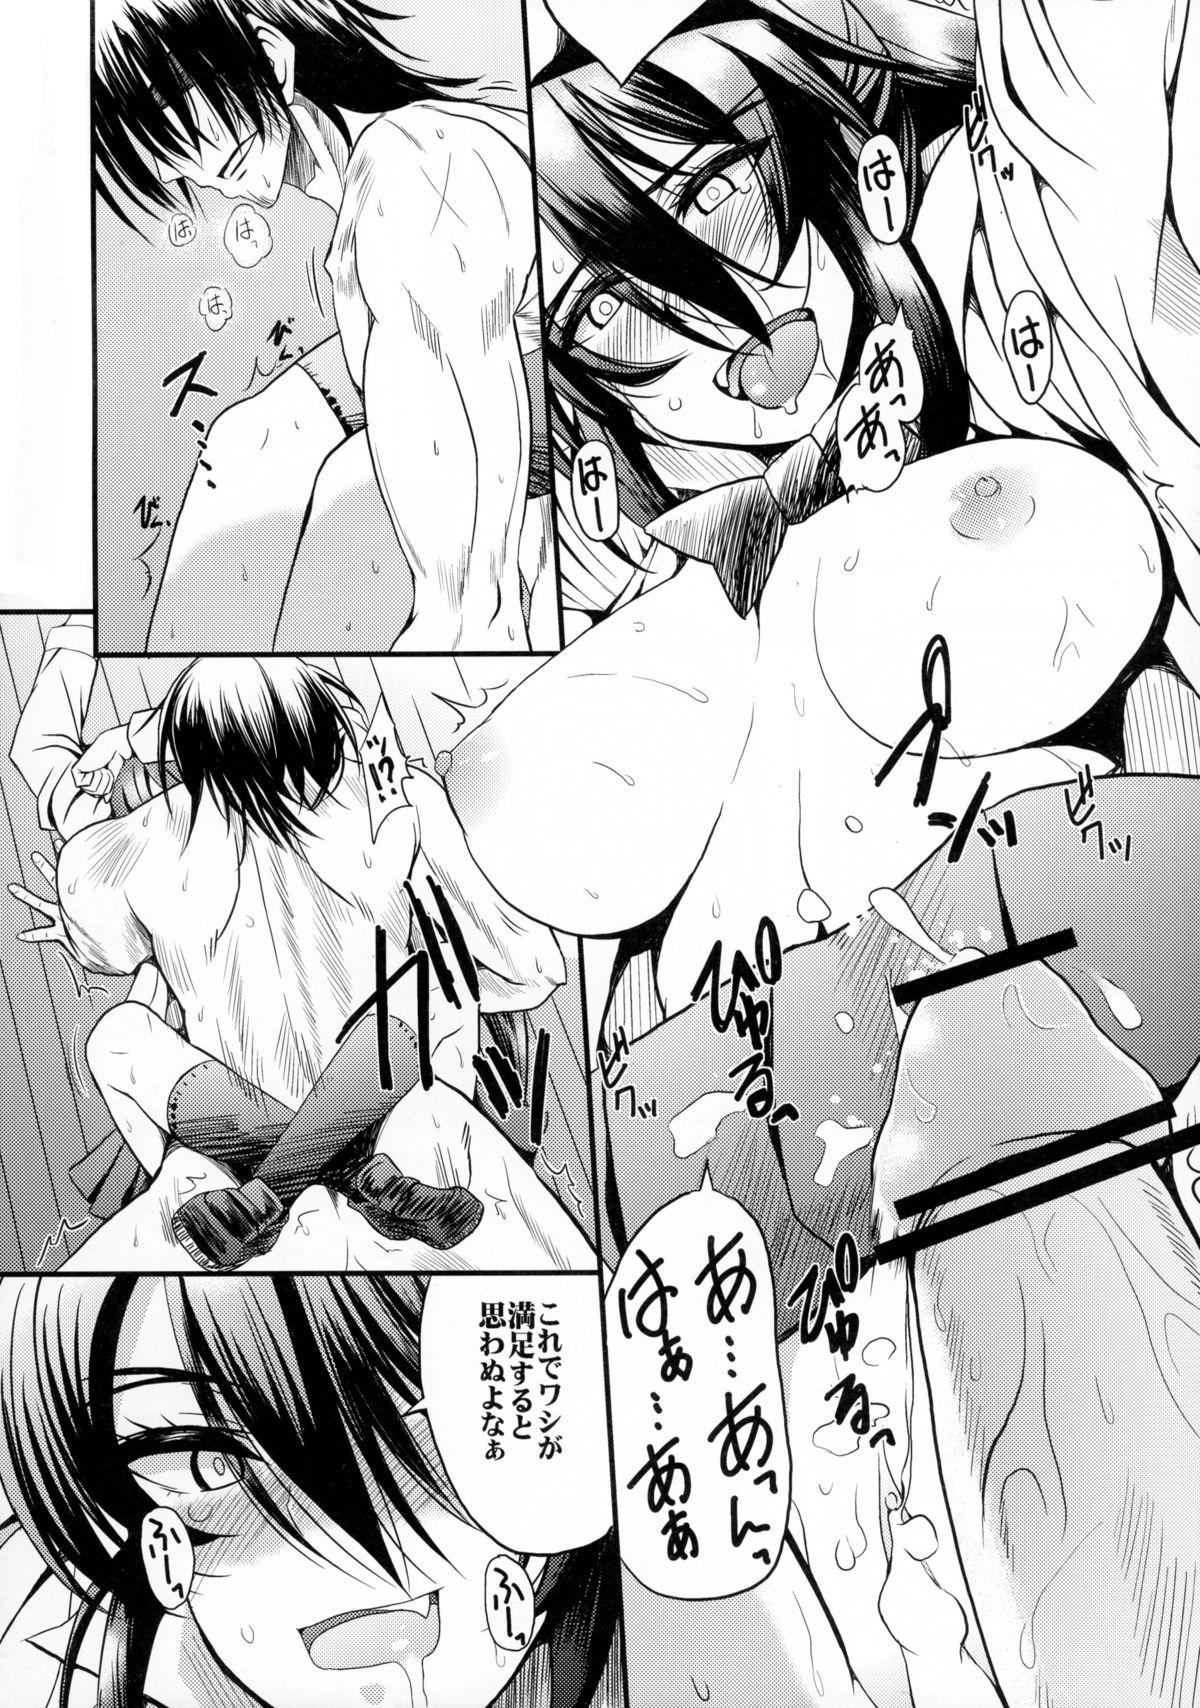 the immoral Flavor 2 7